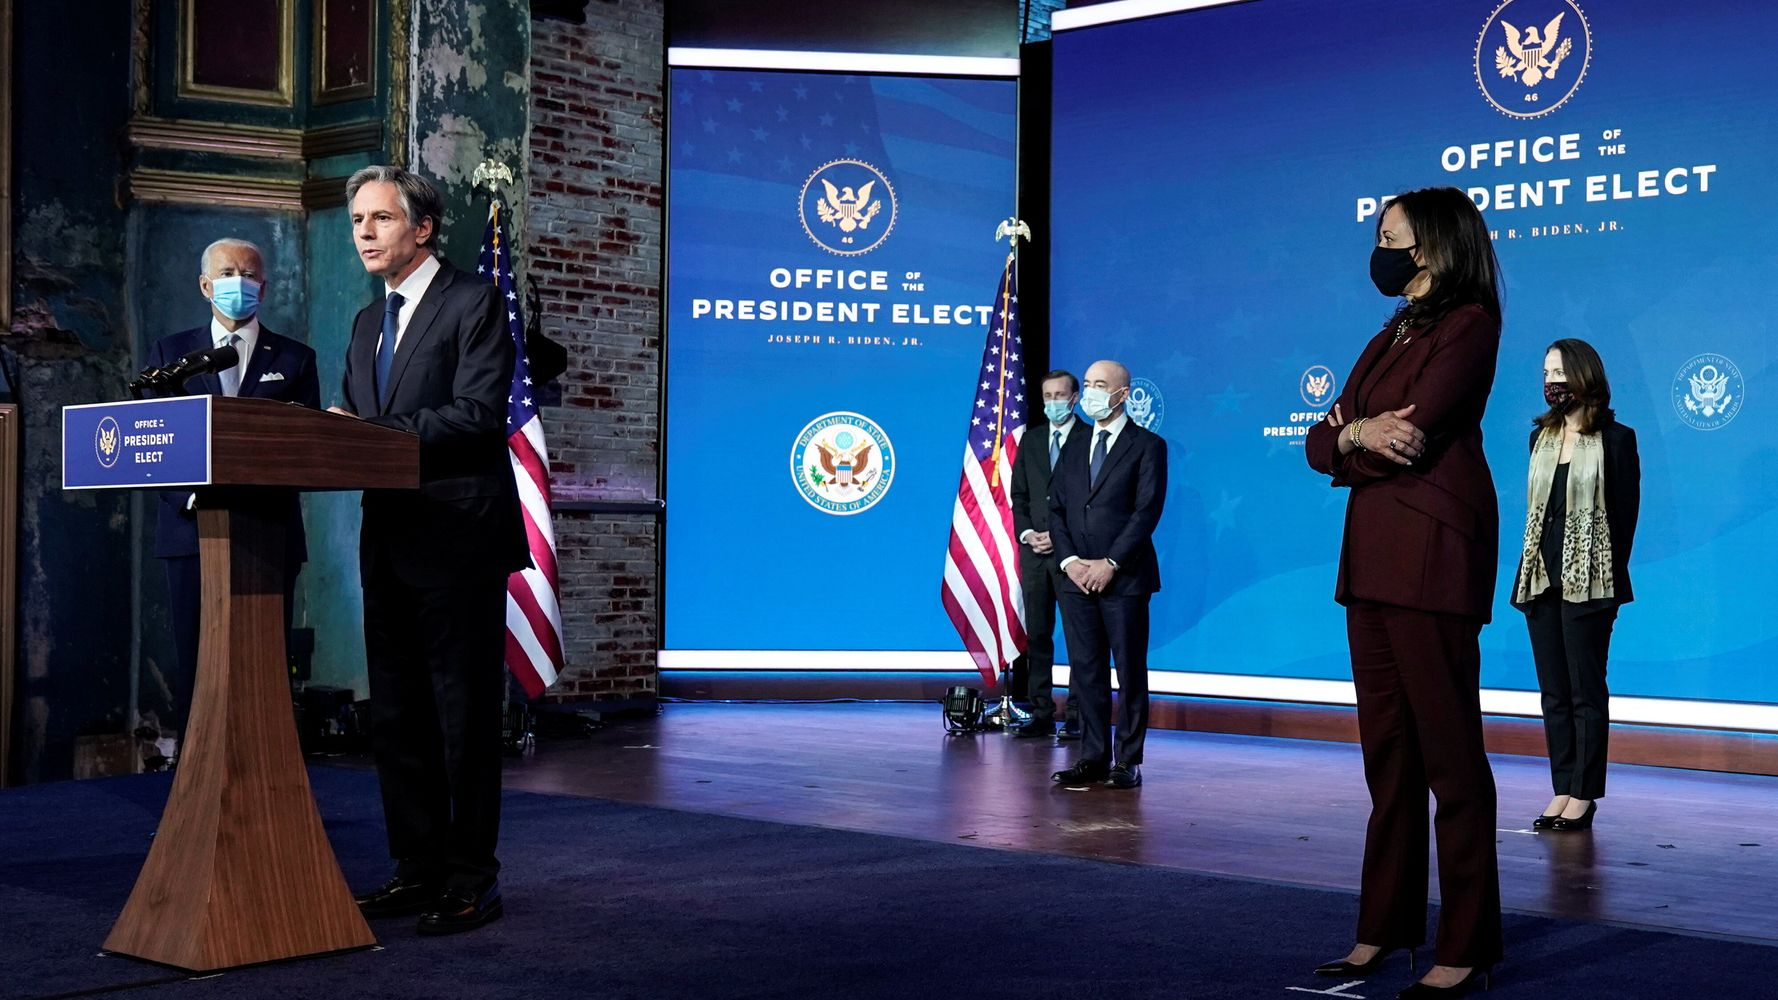 The Key Point About Joe Biden's National Security Picks: It's Truly The Biden Show